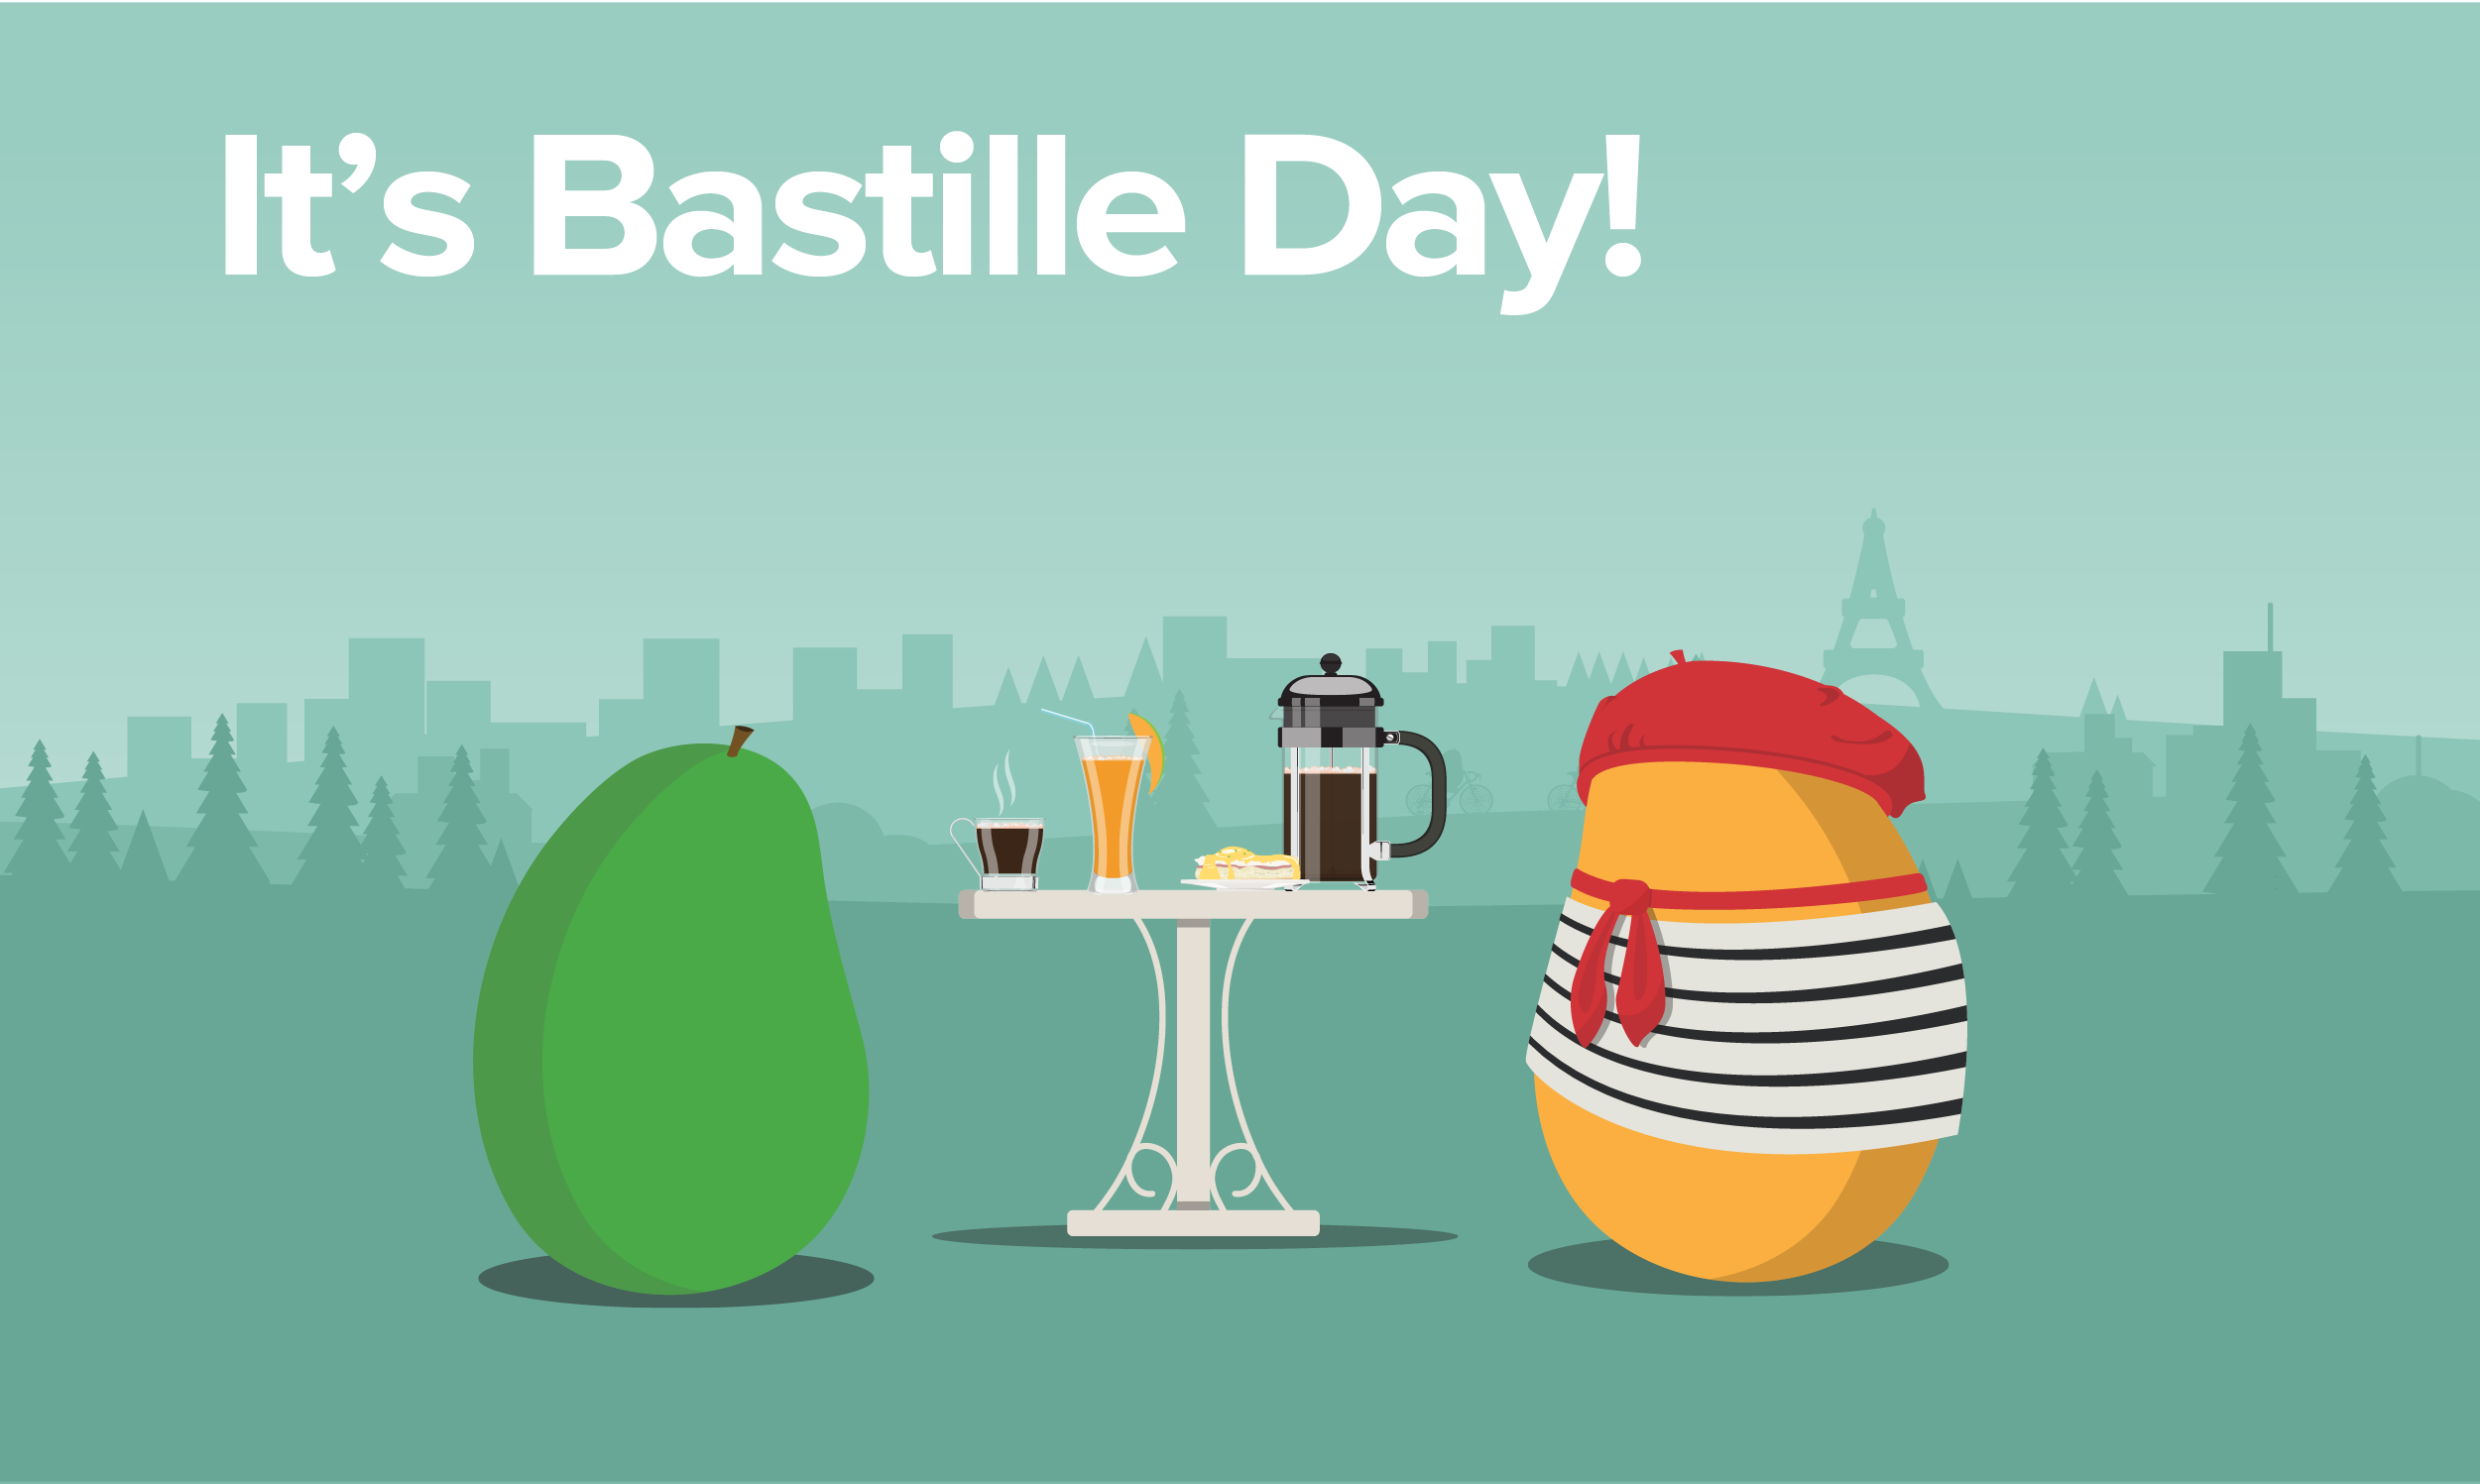 It's Bastille Day